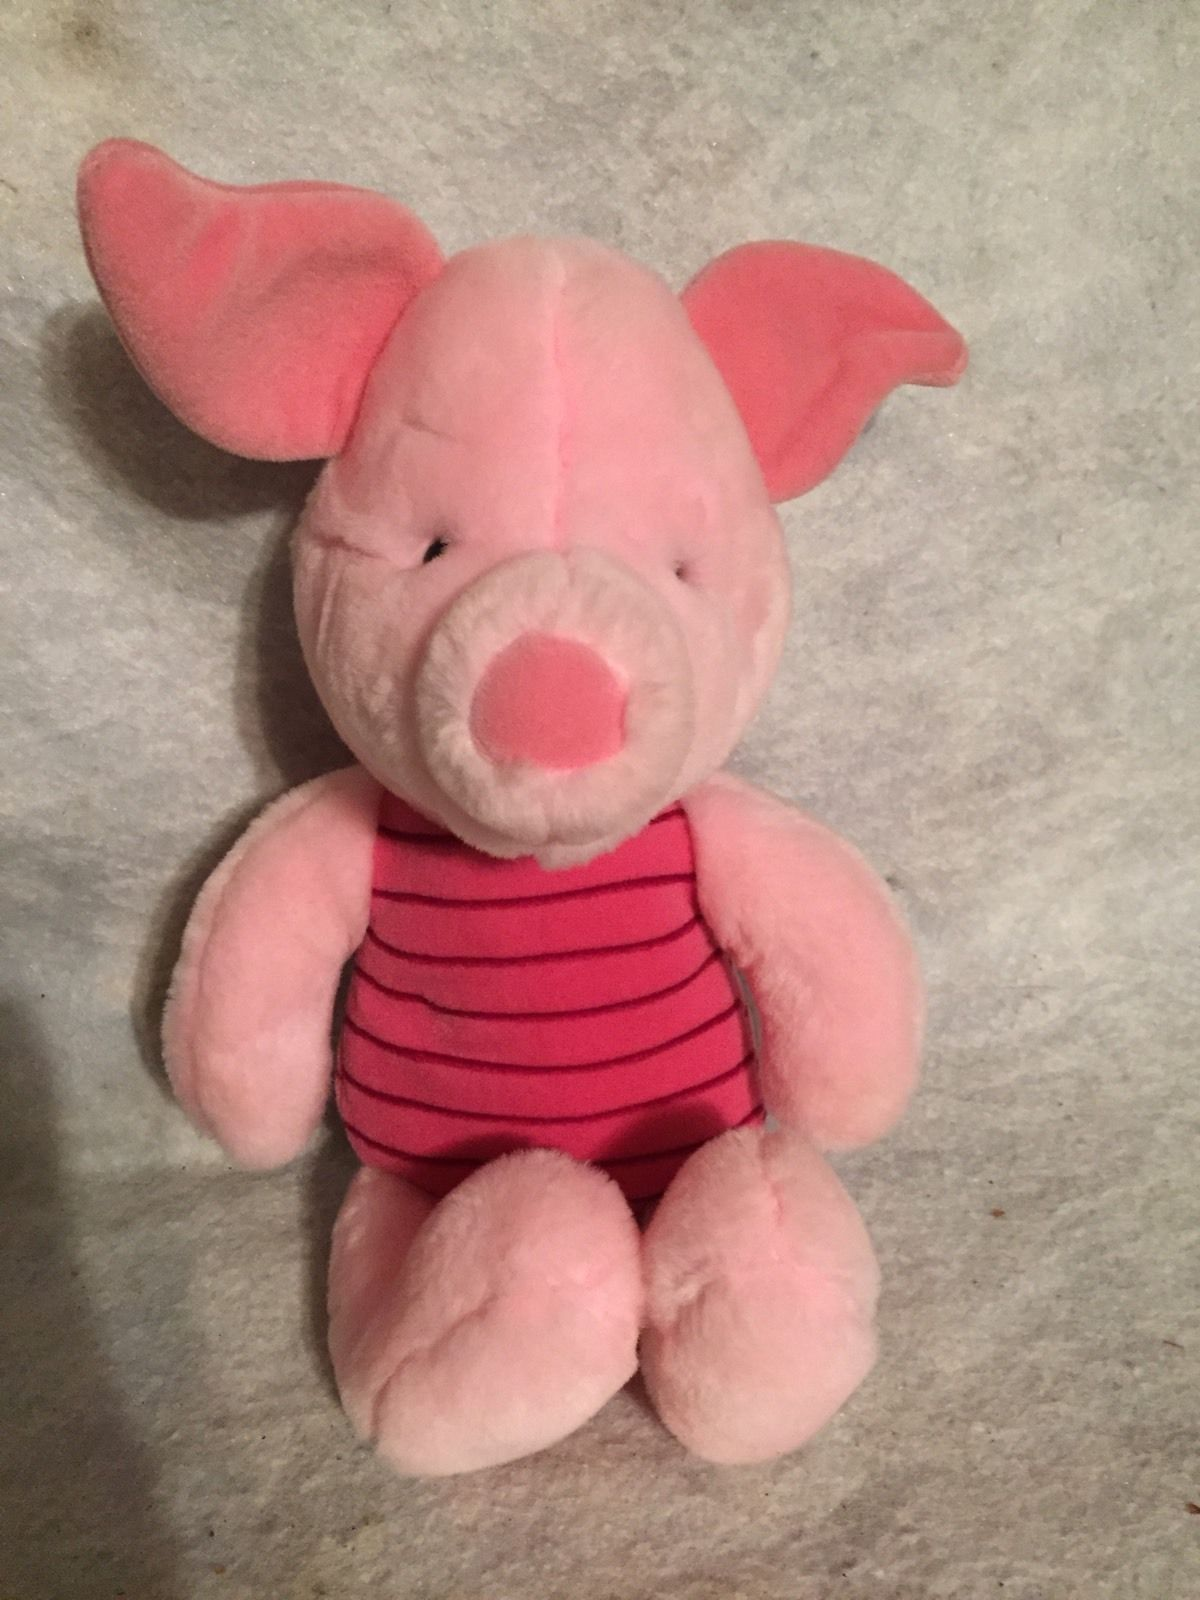 "Primary image for Disney Winnie The Pooh Friend Piglet Doll Plush Stuffed Animal. 13"" Exclusive."